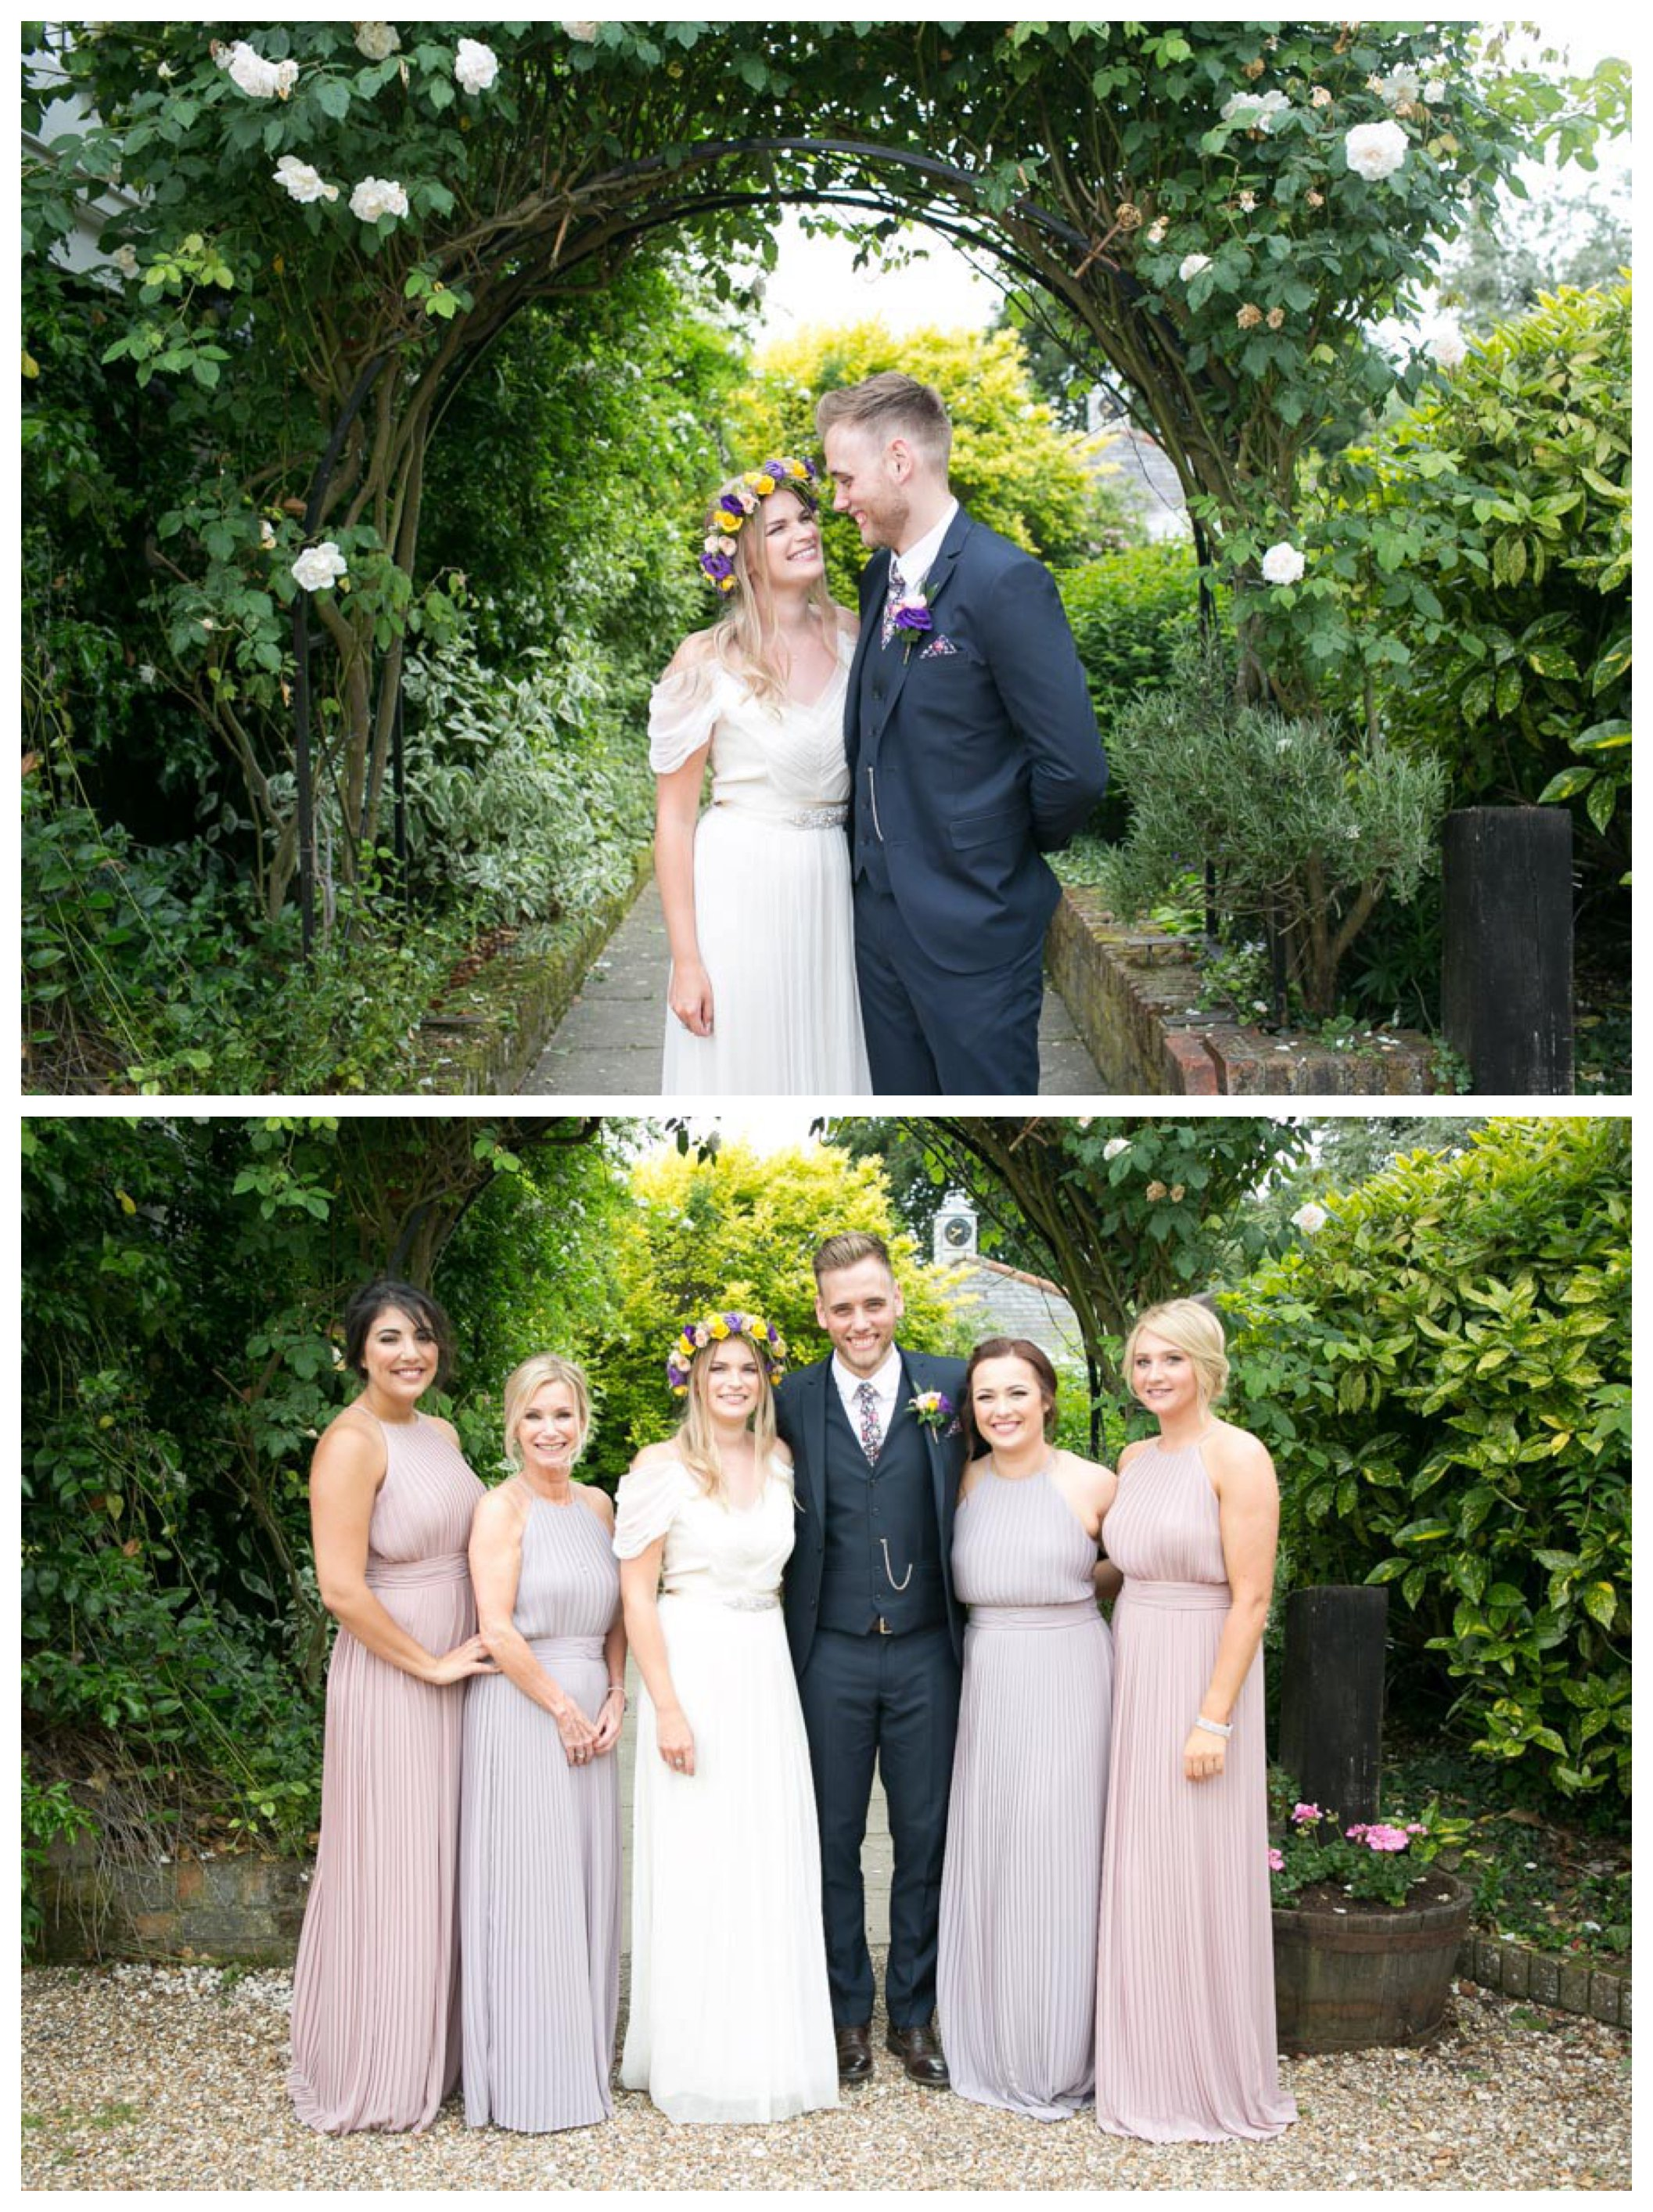 relaxed just married couples under pretty rose arch, relaxed group photograph of bride groom and bridesmaids